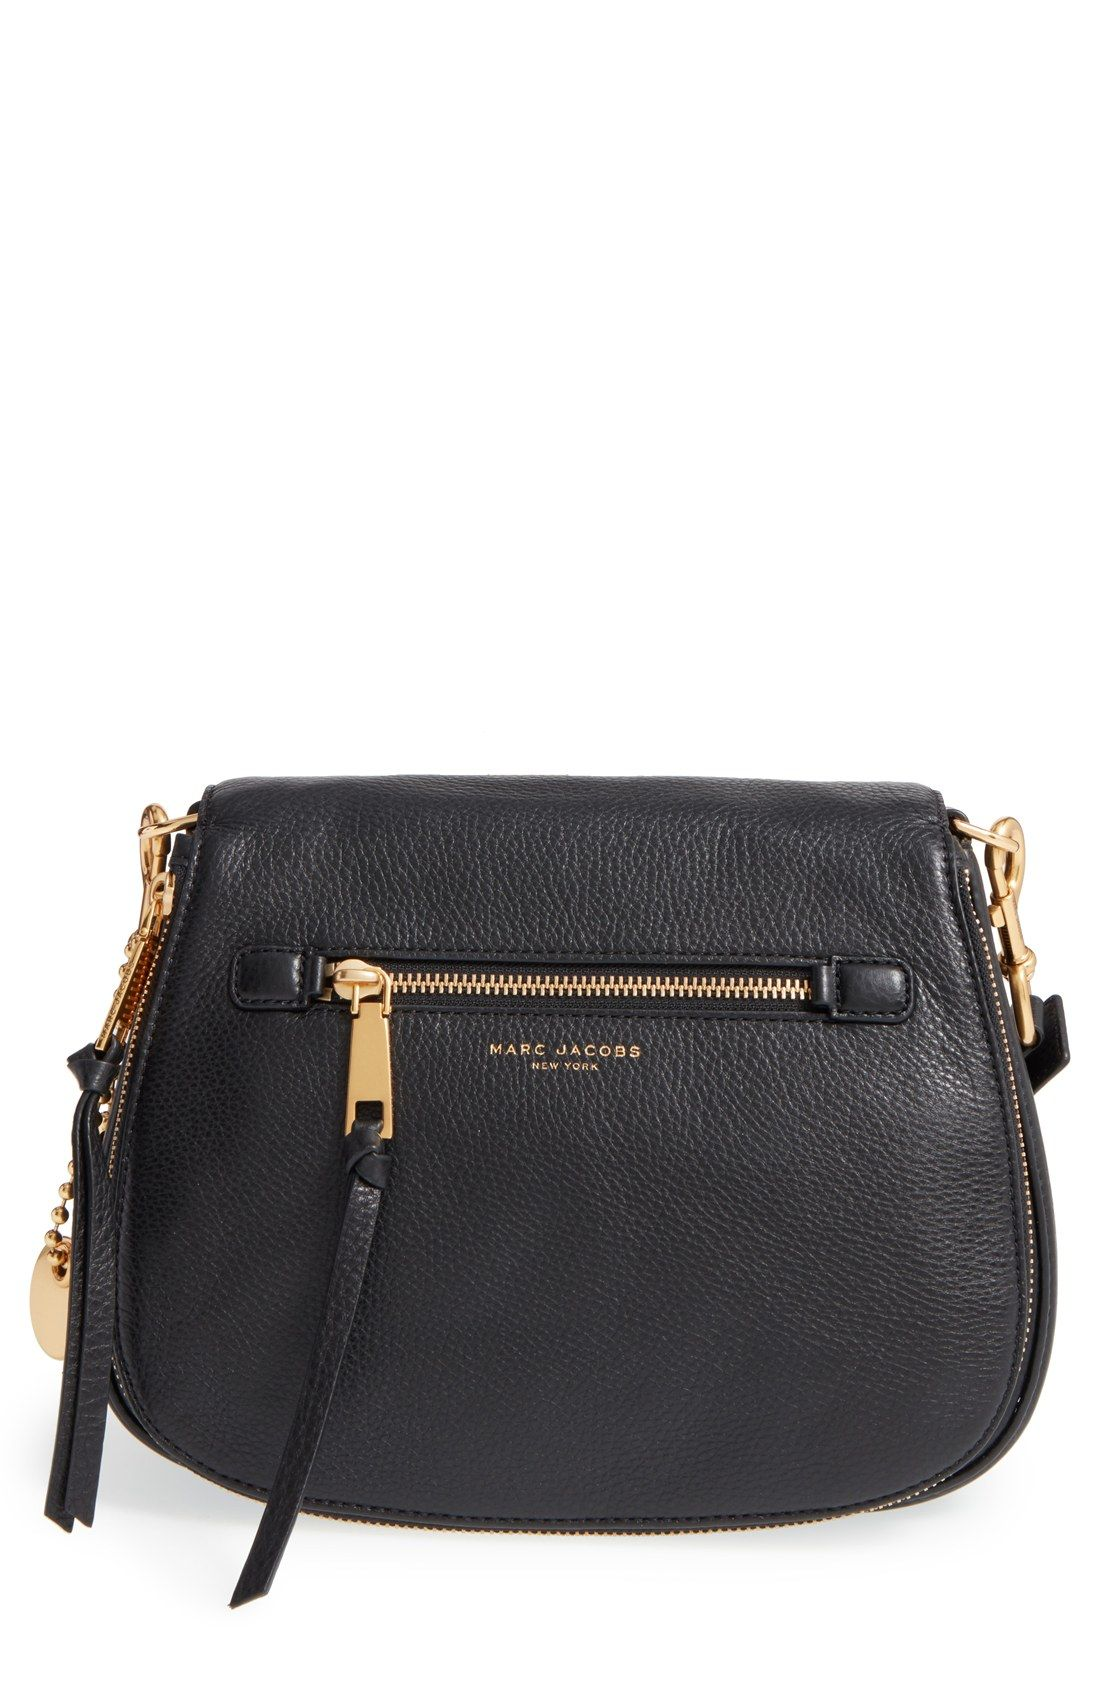 MARC JACOBS Recruit Nomad Pebbled Leather Crossbody Bag | Nordstrom